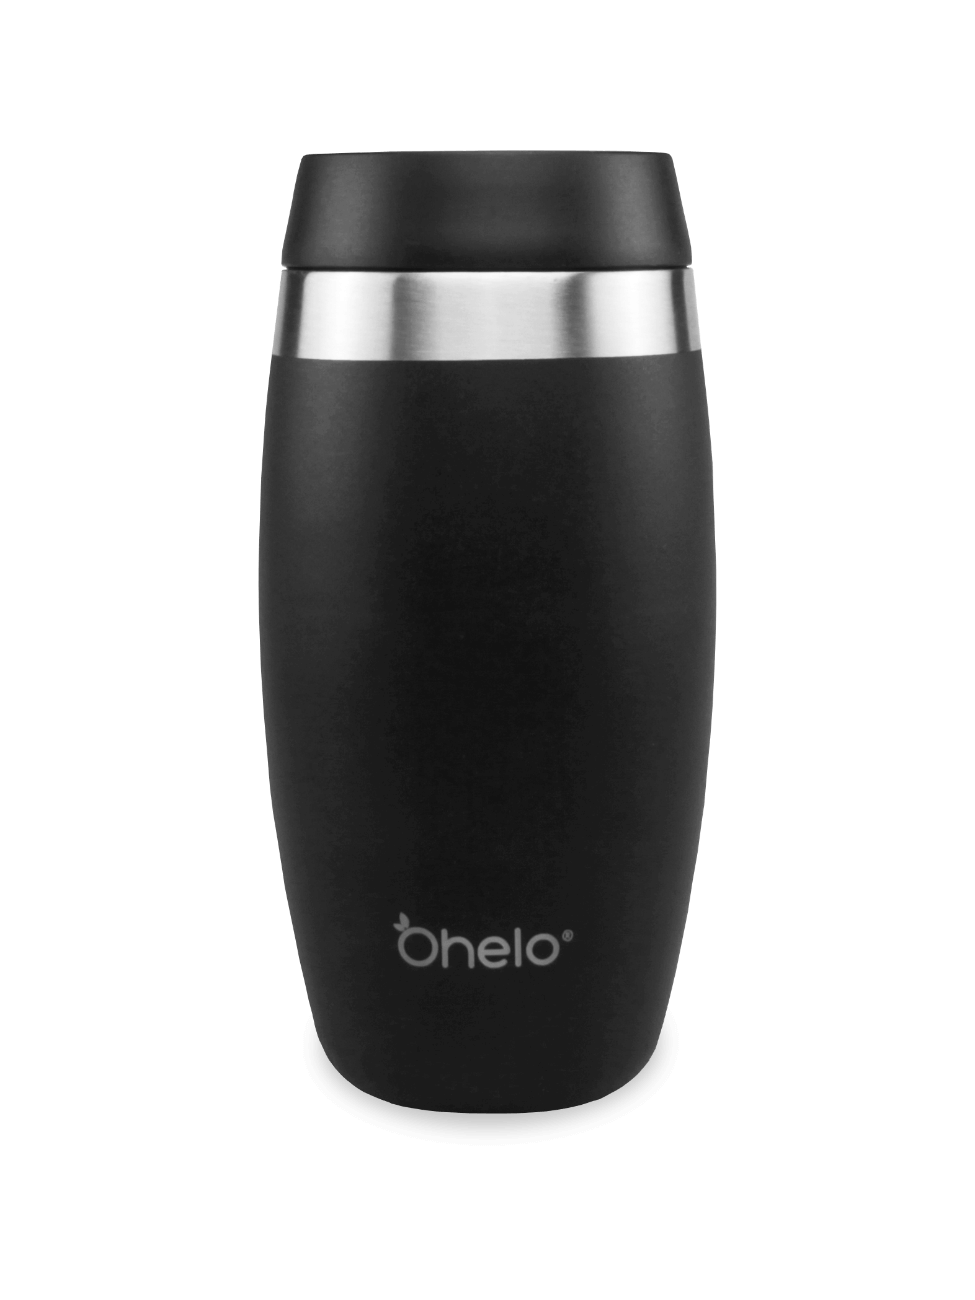 Ohelo stainless steel reusable tumbler black